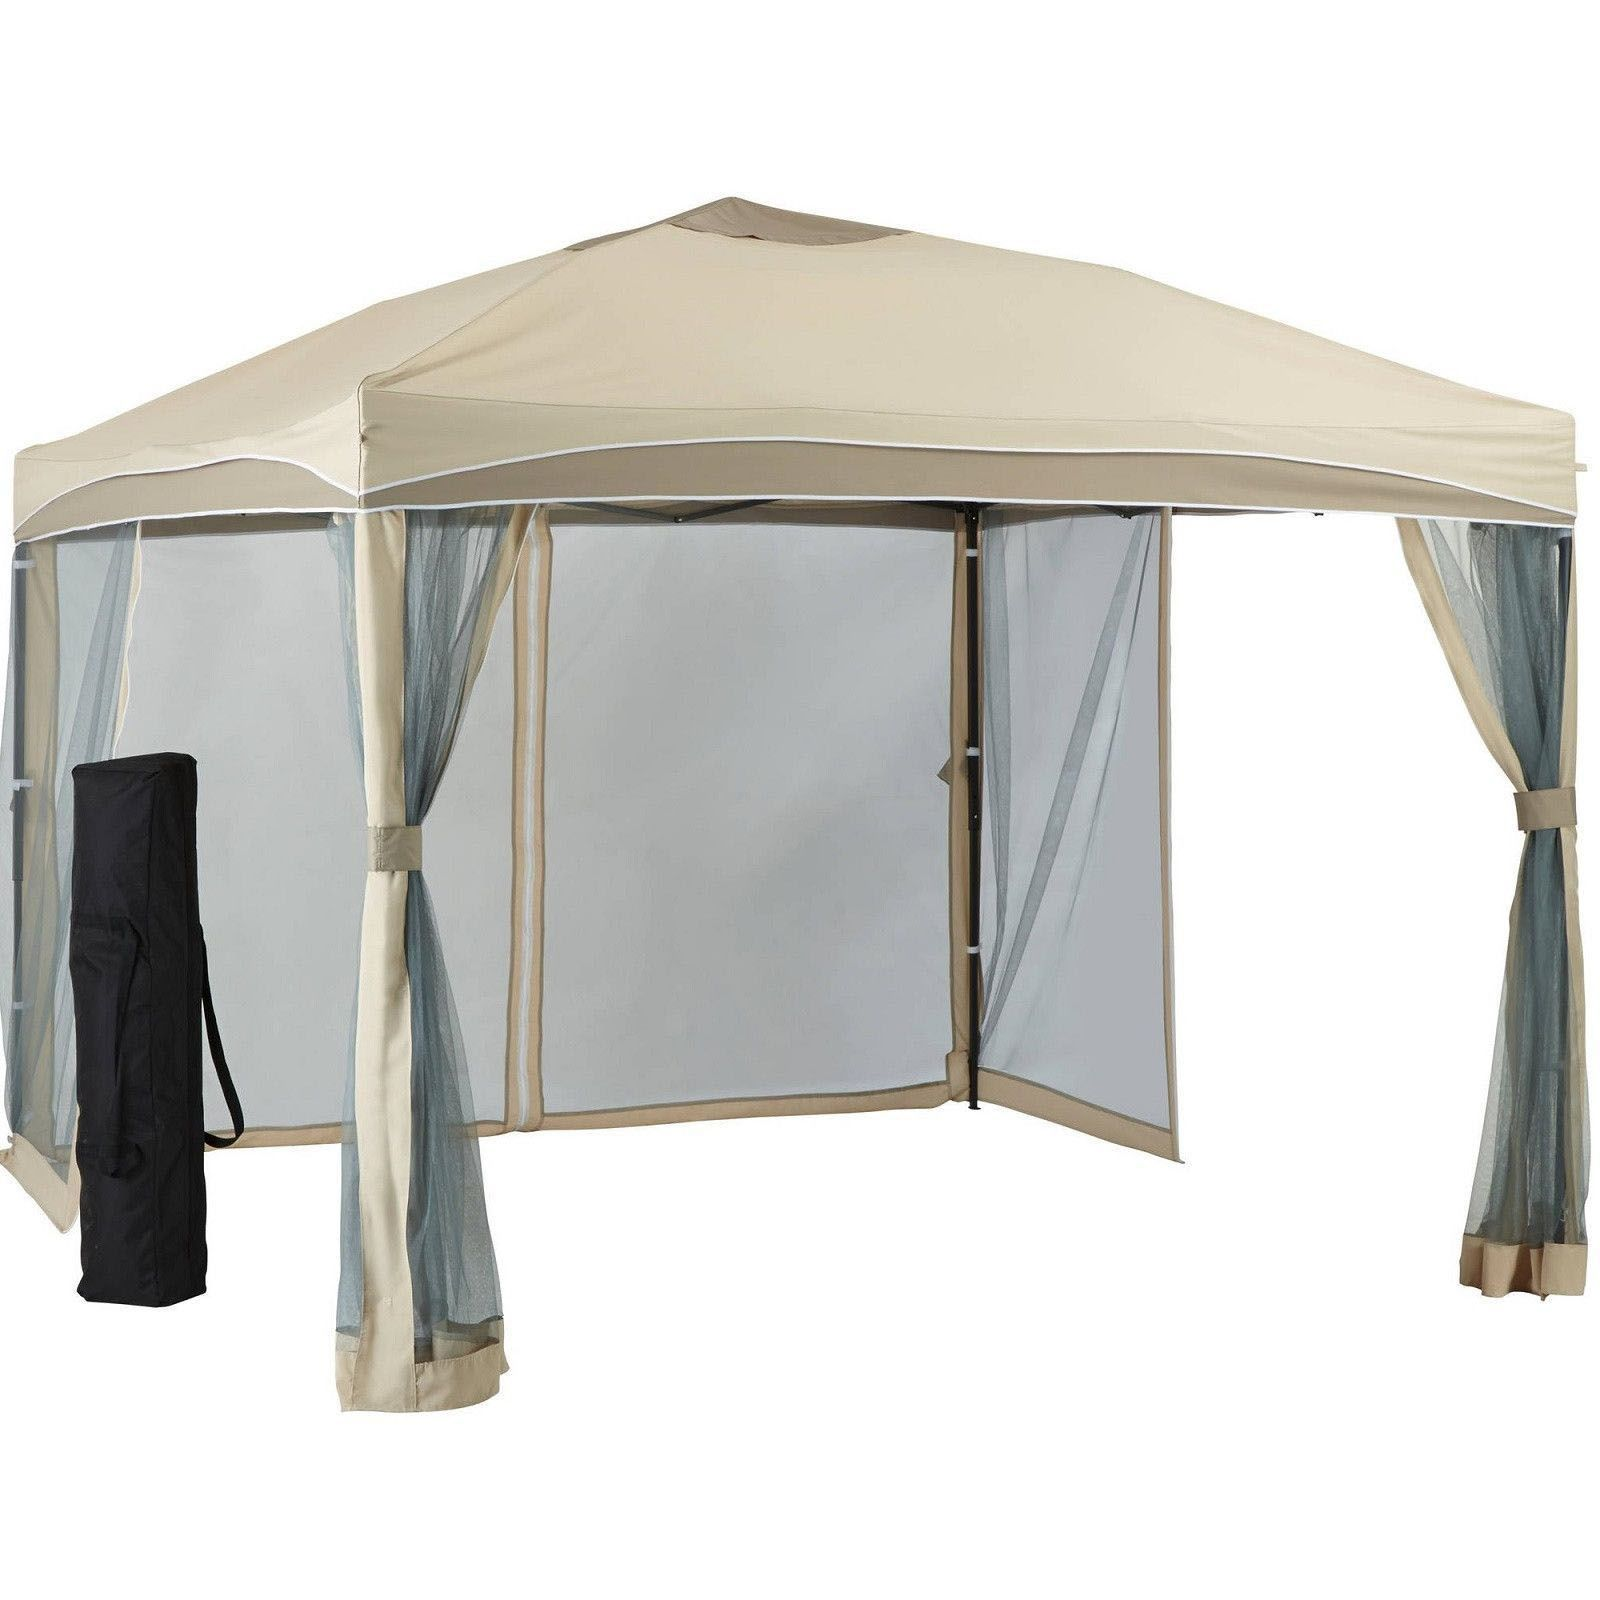 Fantastic Replacement Gazebo Canopy 3x4 One And Only